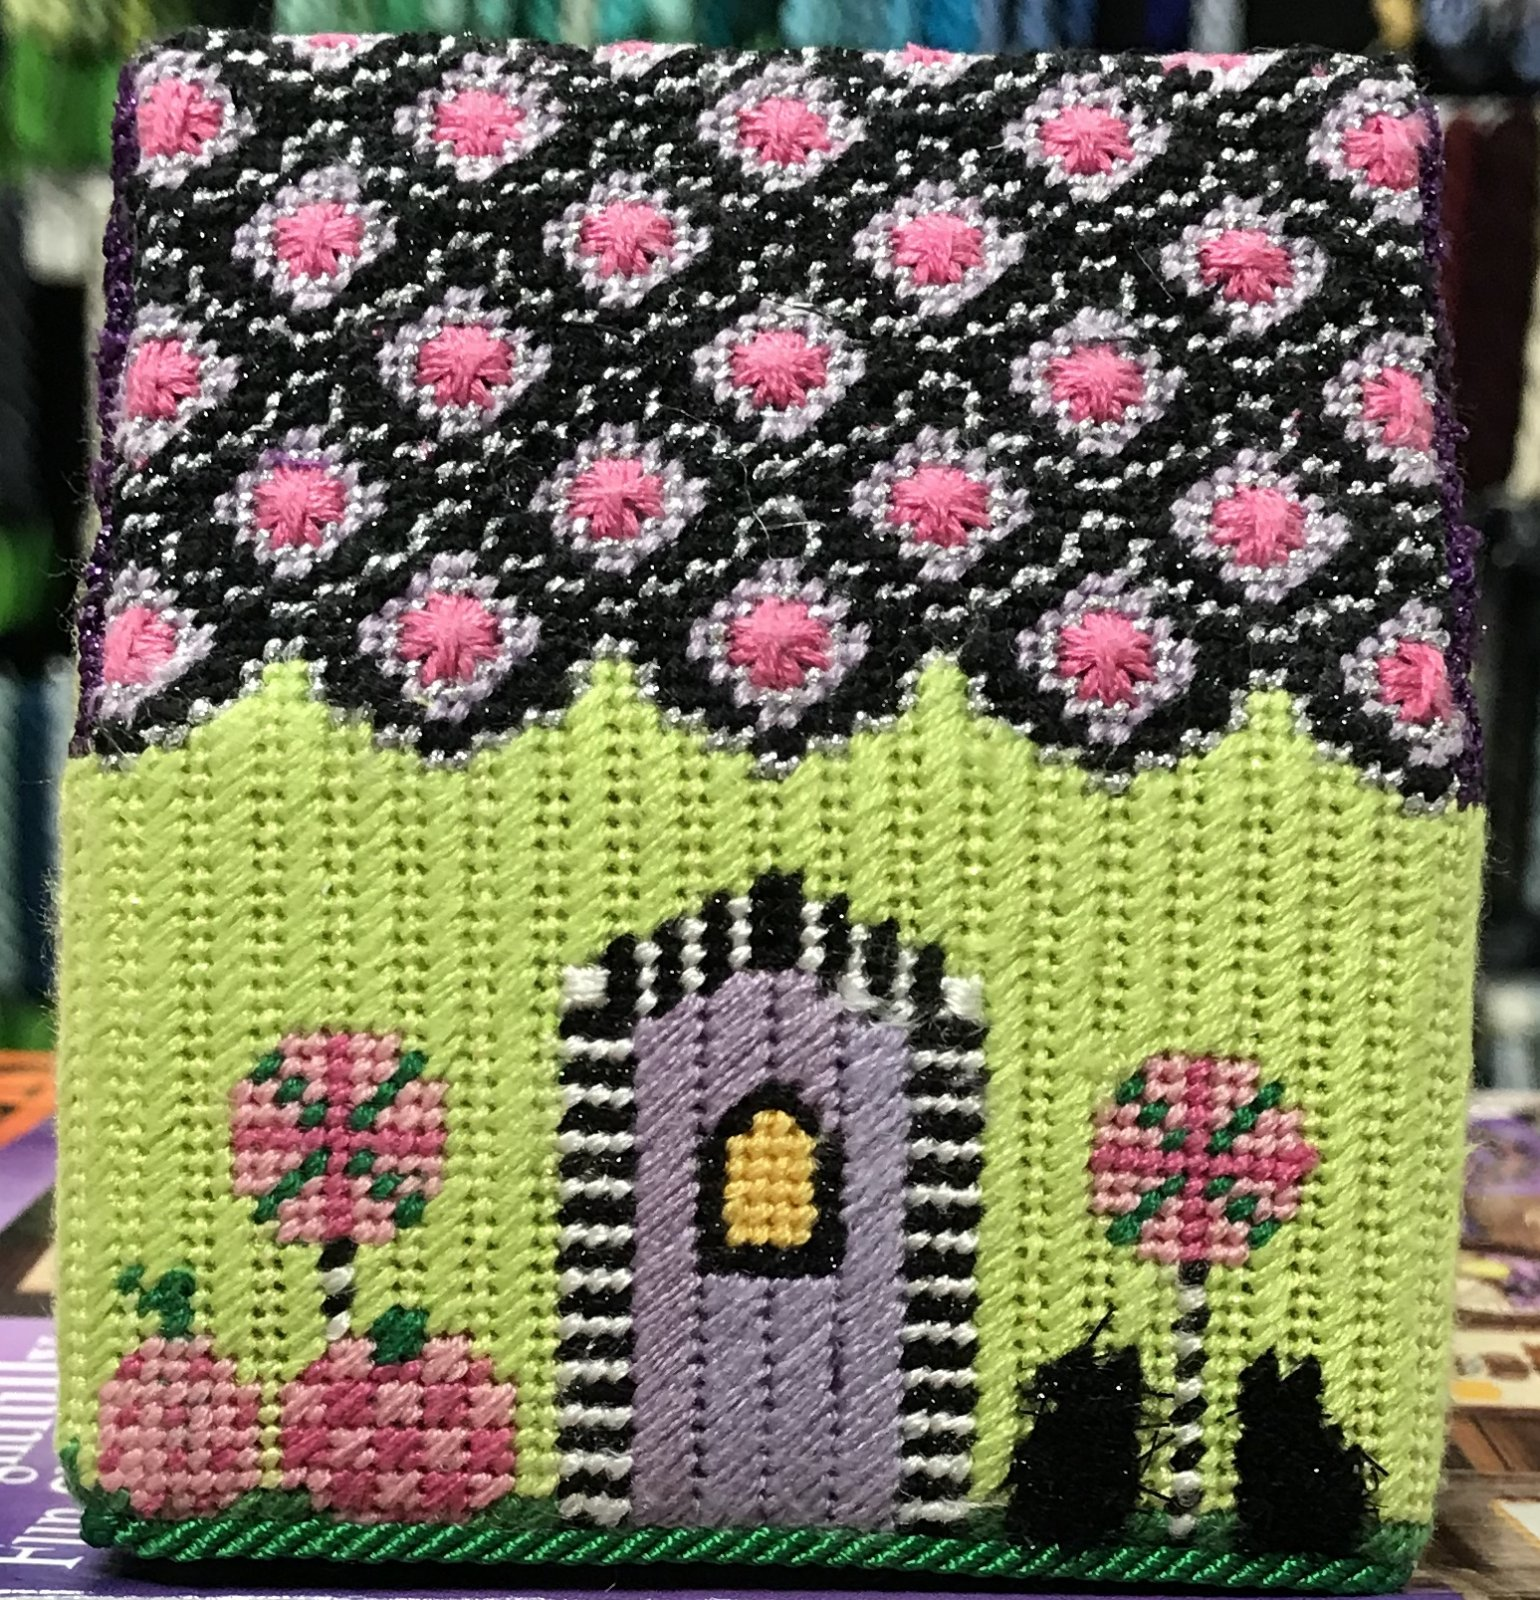 Halloween House - stitched by Cindy C.